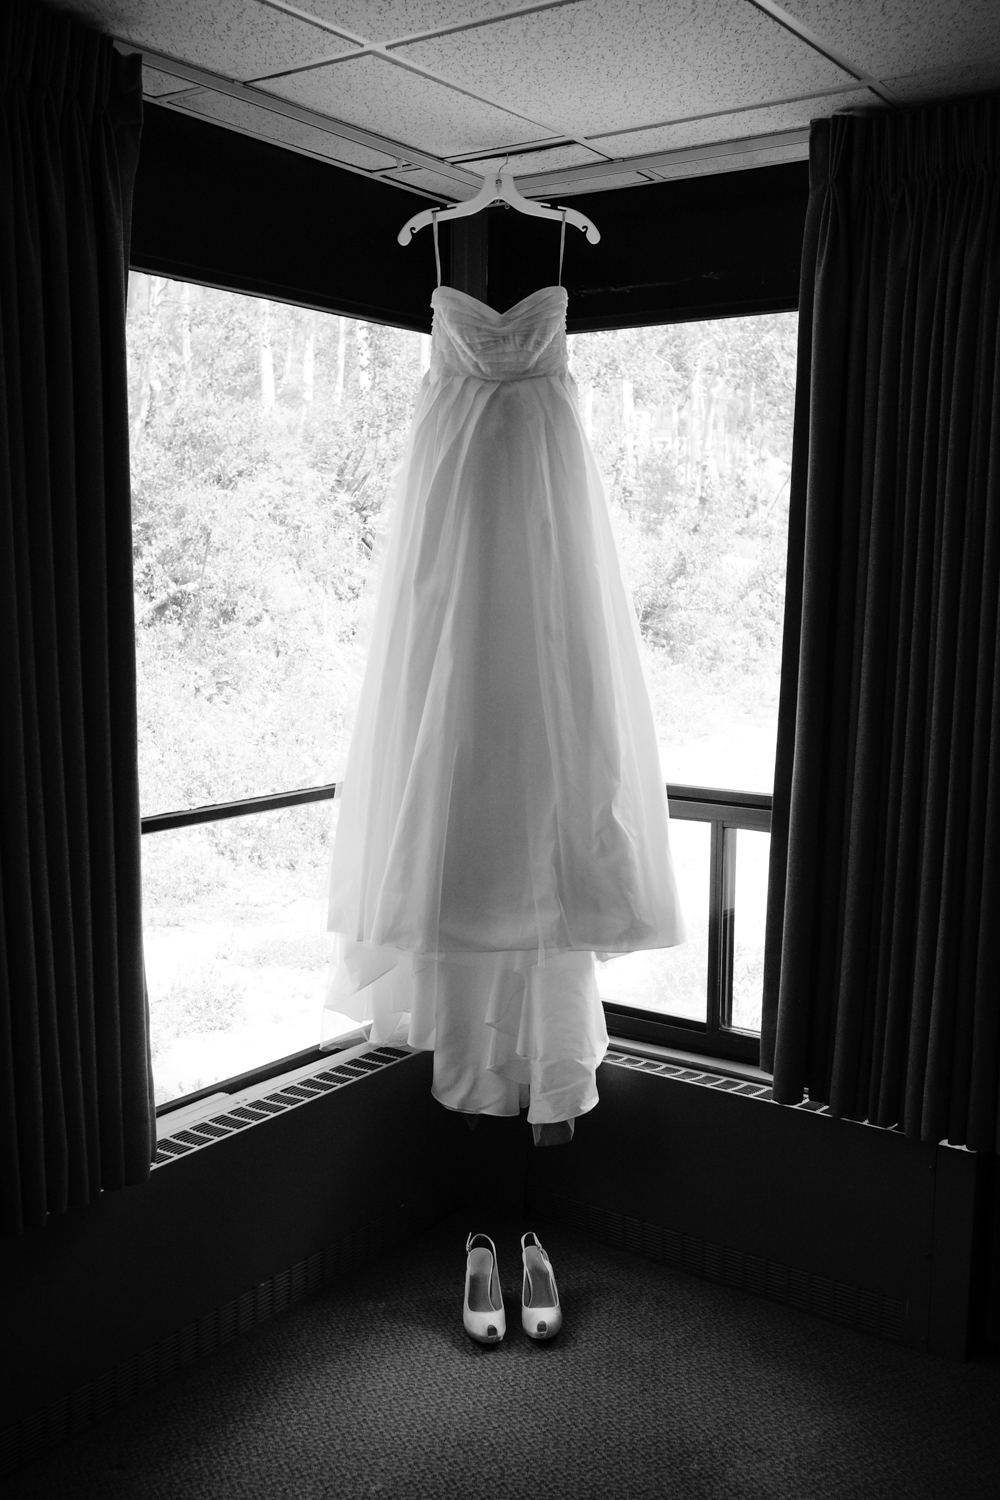 alta-lodge-utah-wedding-7.jpg